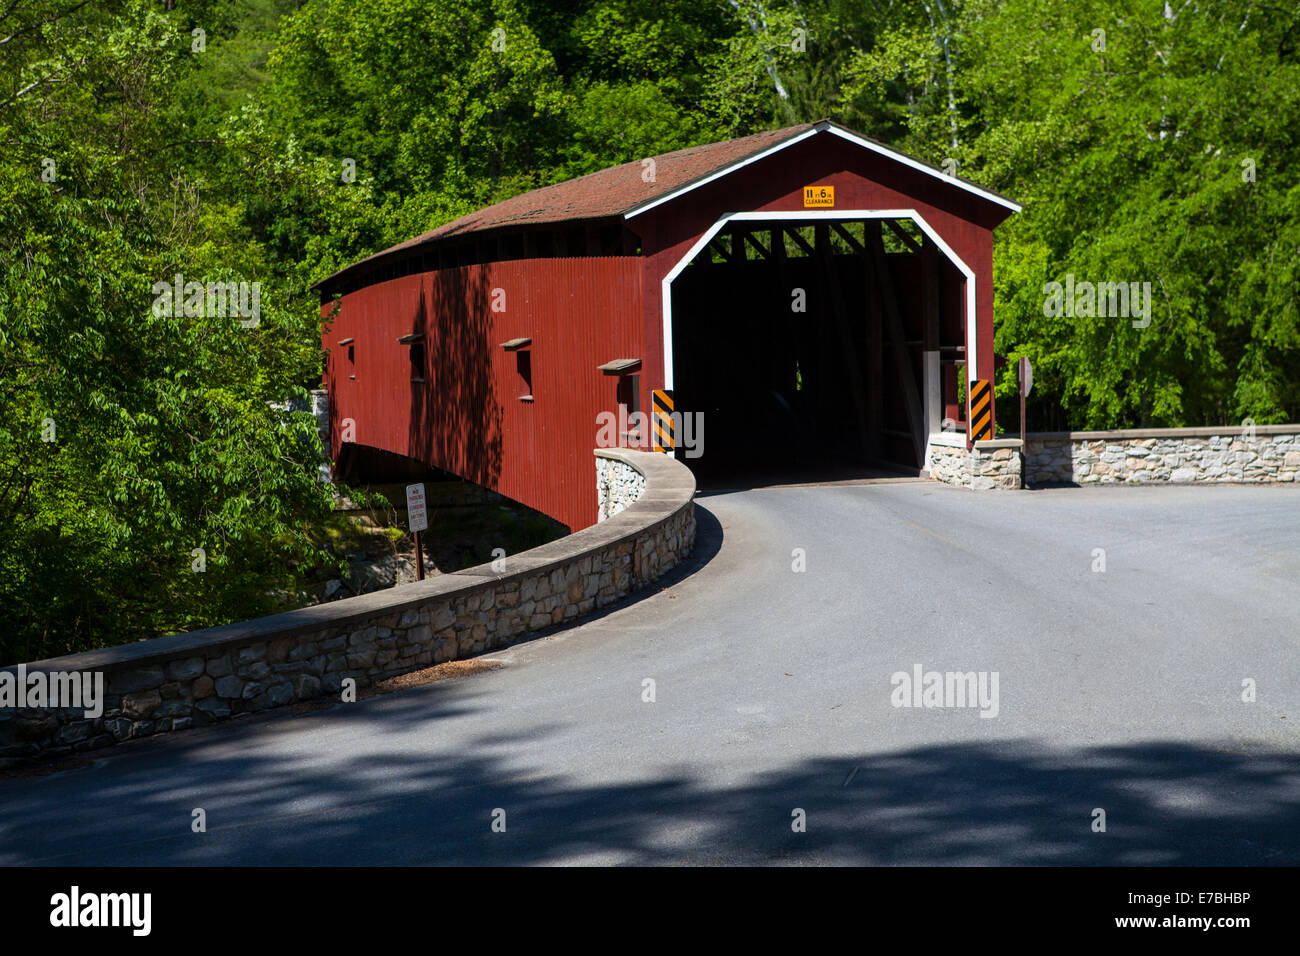 forksville dating We have reviews of the best places to see in forksville  things to do in  forksville   when are you traveling start date end date  forksville inn &  tavern.